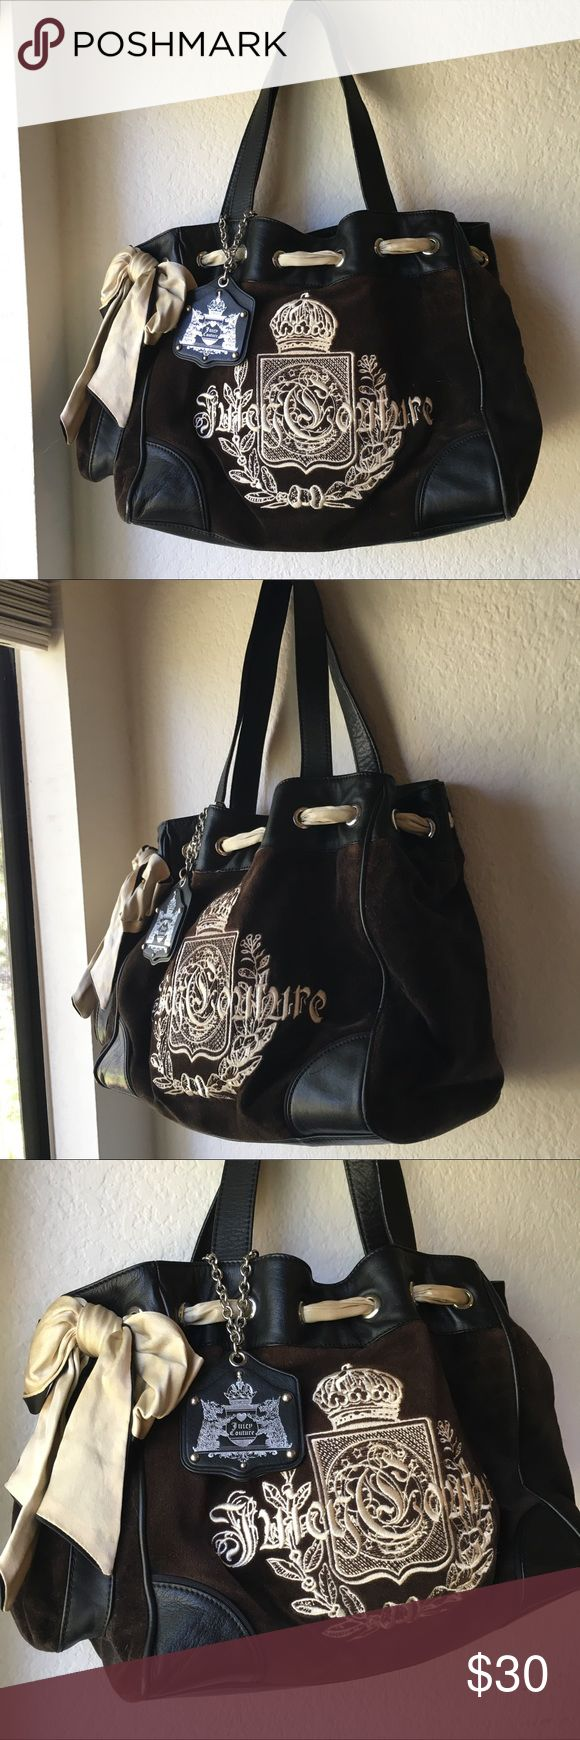 Juicy Couture Black Purse Black Juicy Couture Purse. Slightly used but in good condition Bird by Juicy Couture Bags Totes